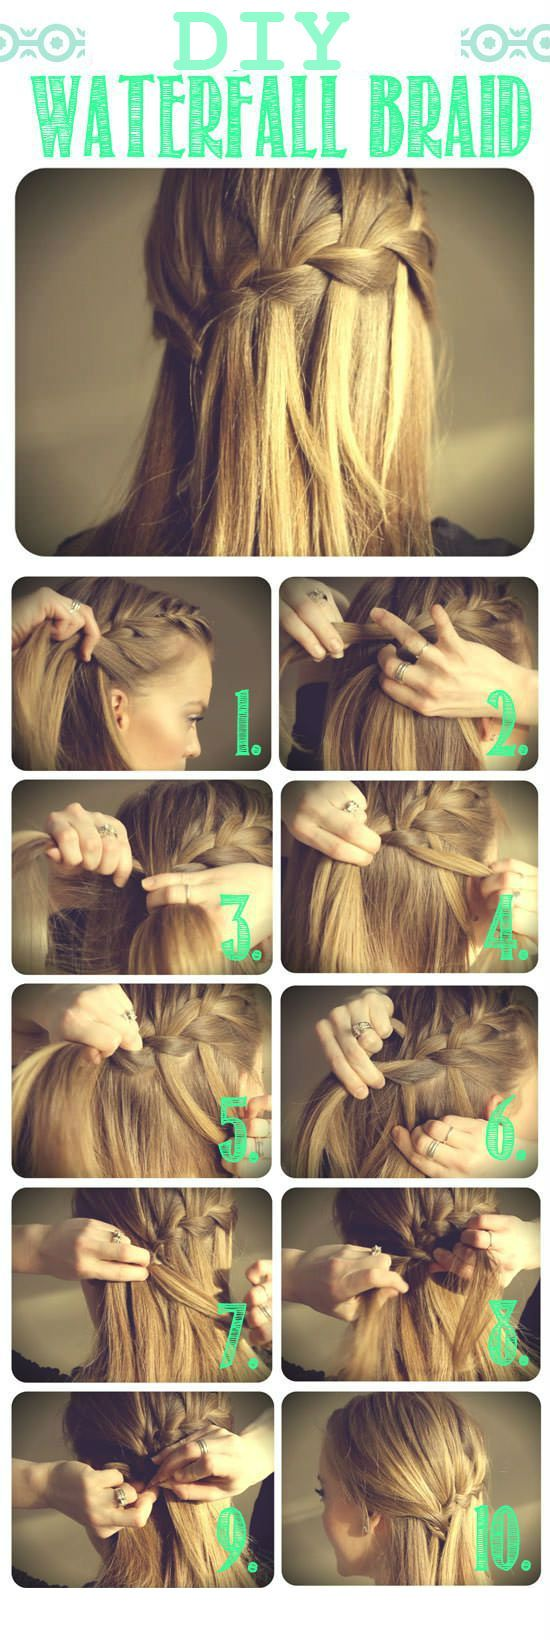 DIY Waterfall Braid Hair Style - The Perfect DIY